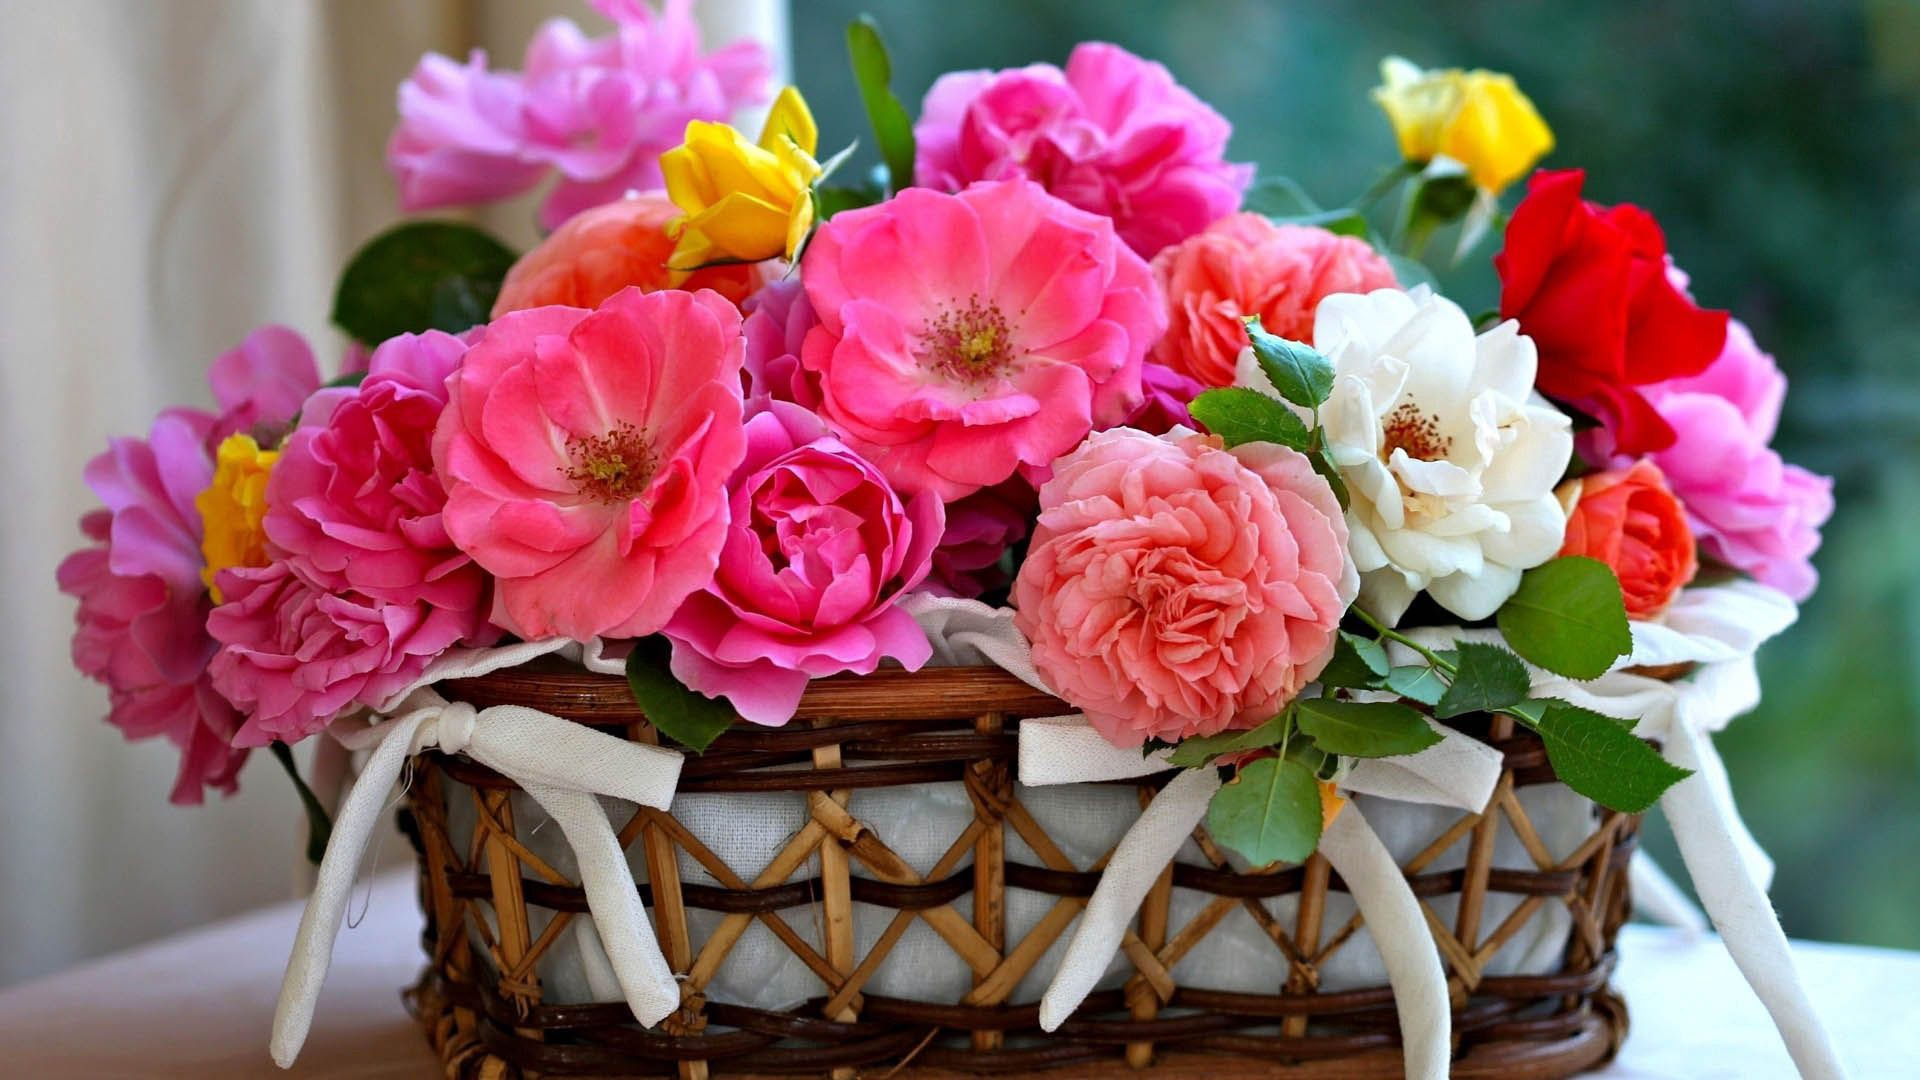 colorful roses inside the bamboo basket in blur green background HD flowers